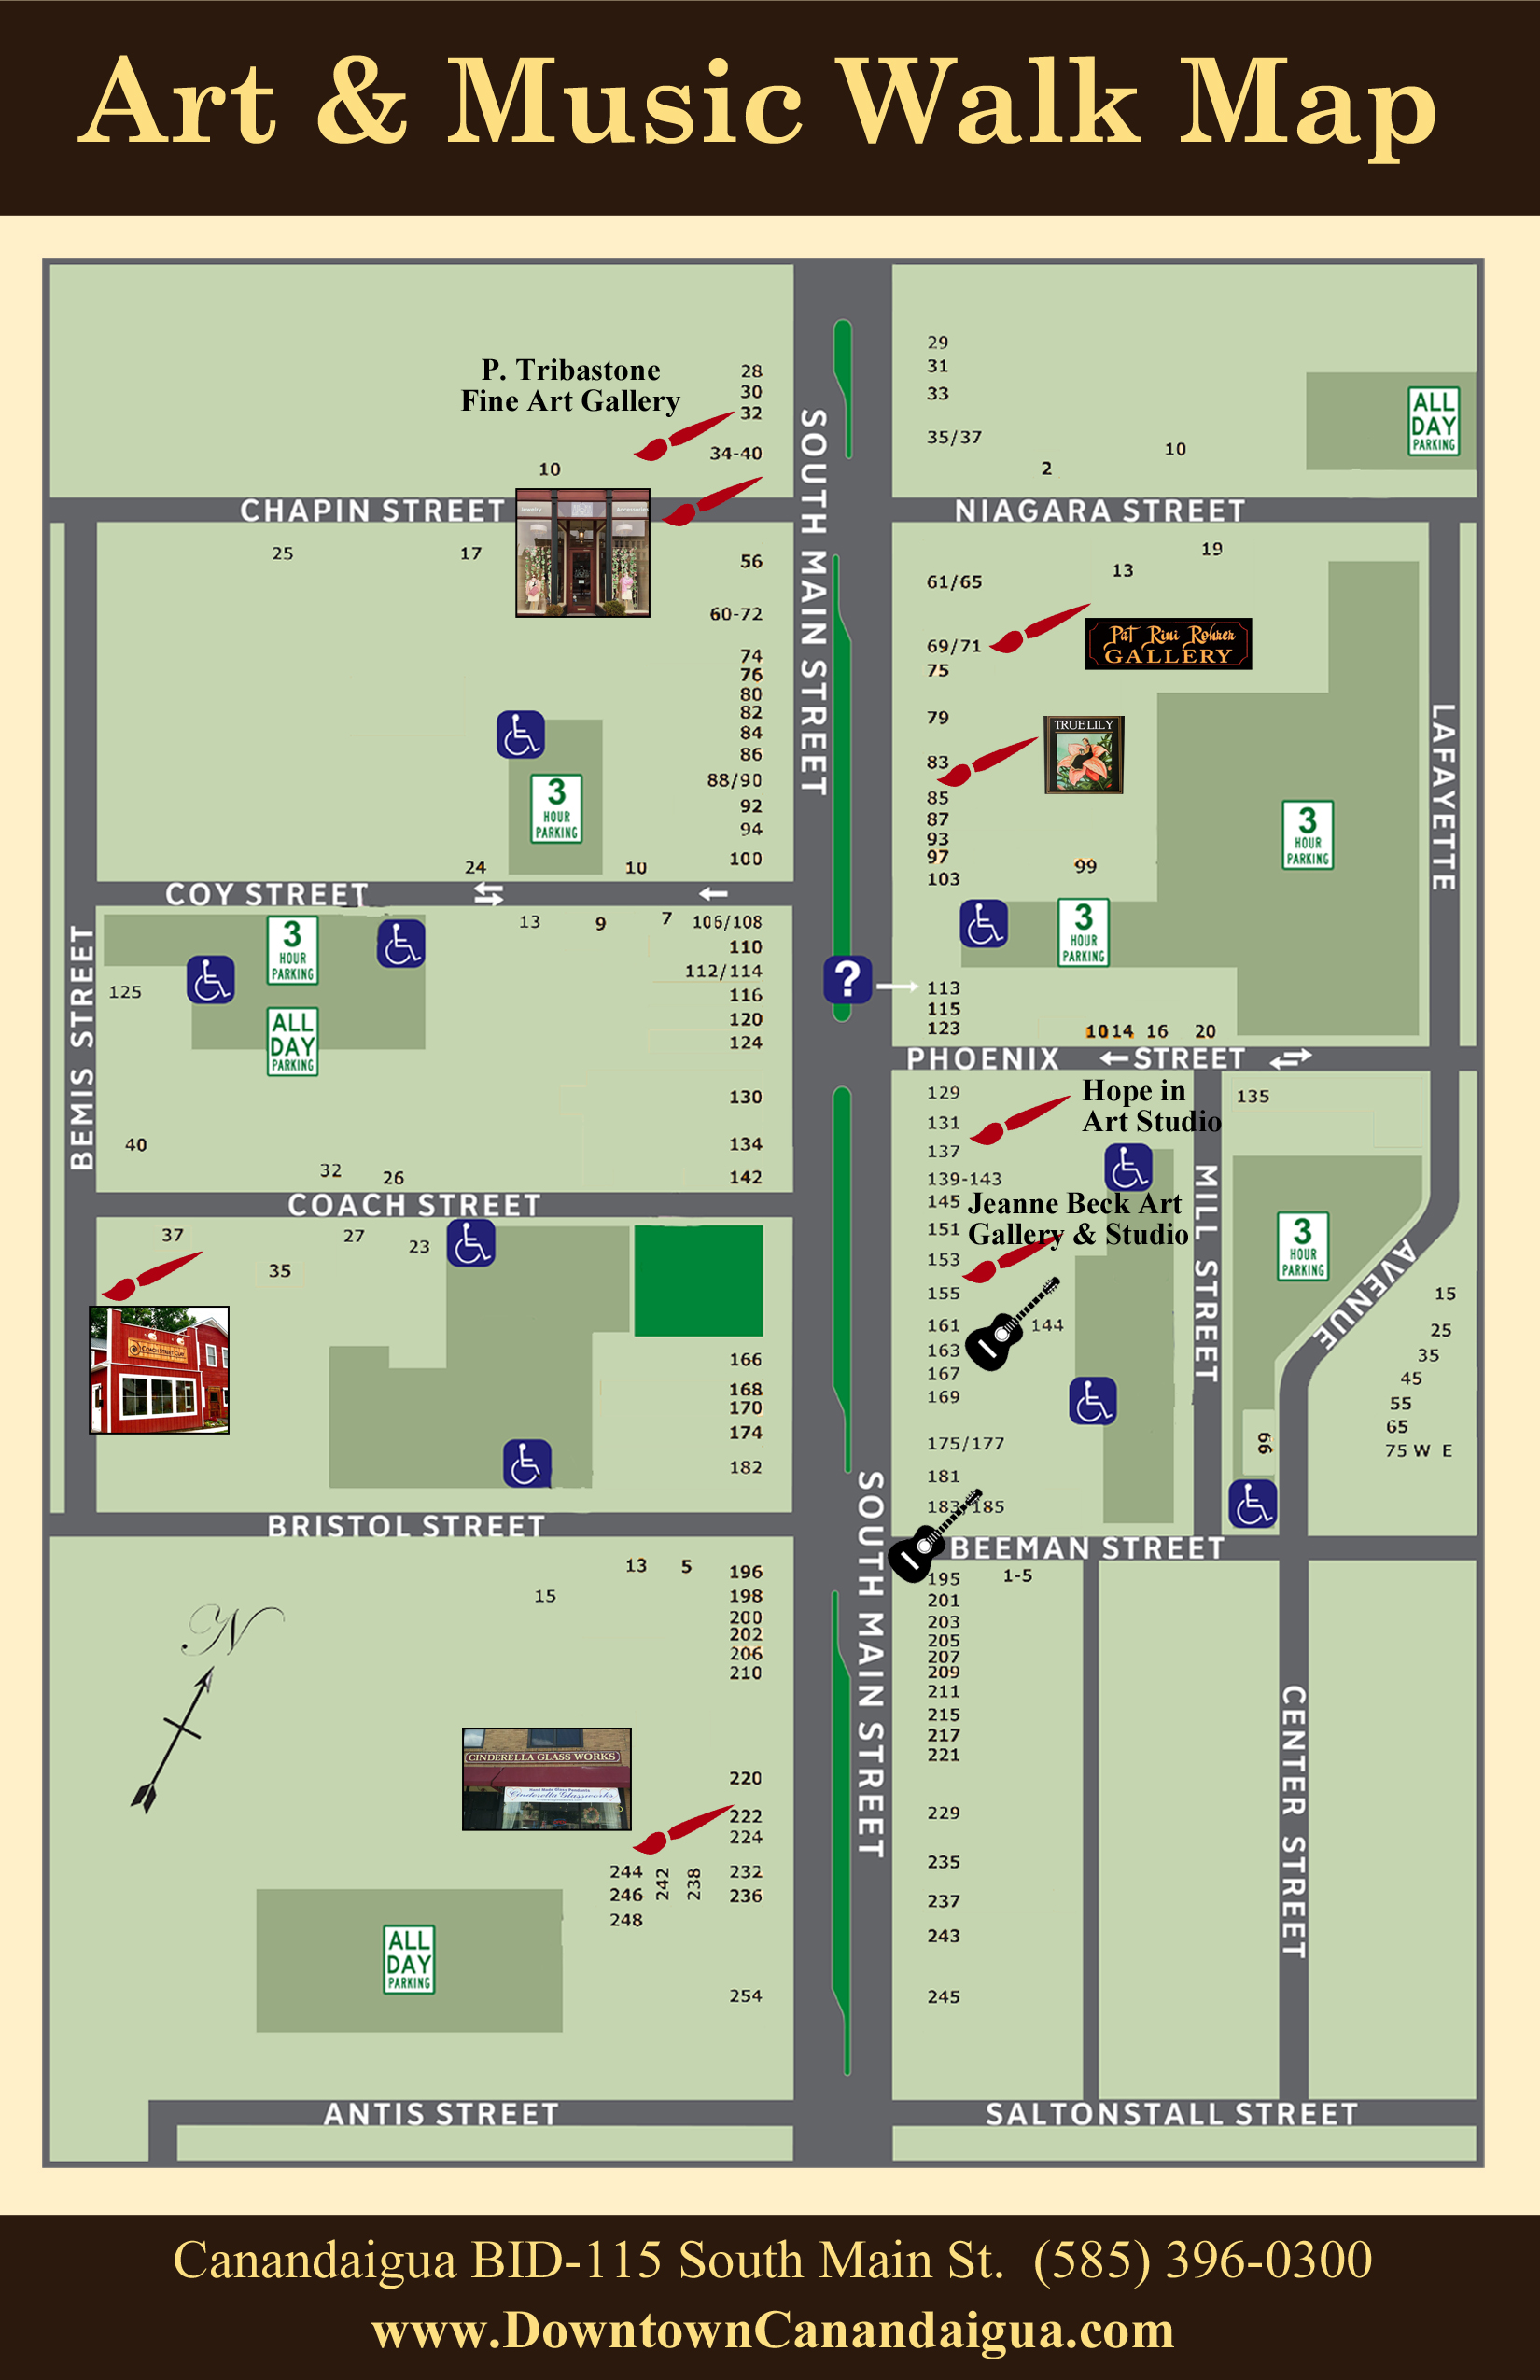 Art & Music Walk 2017 Map.jpg